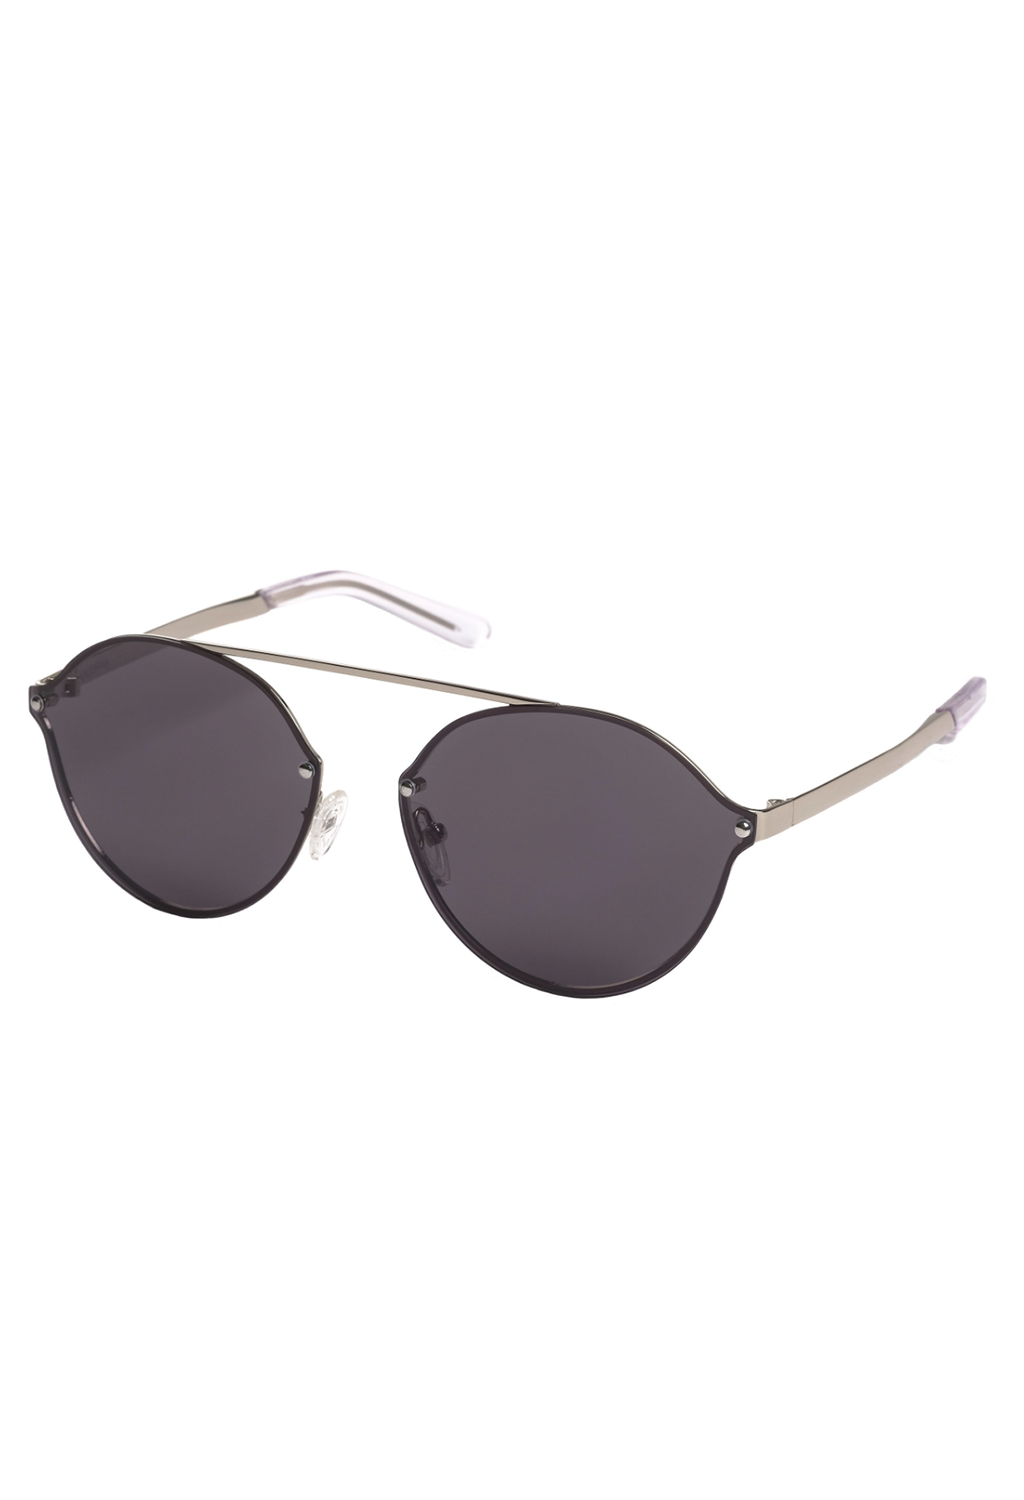 Pilgrim Sunglasses, Zadie Silver Plated Grey